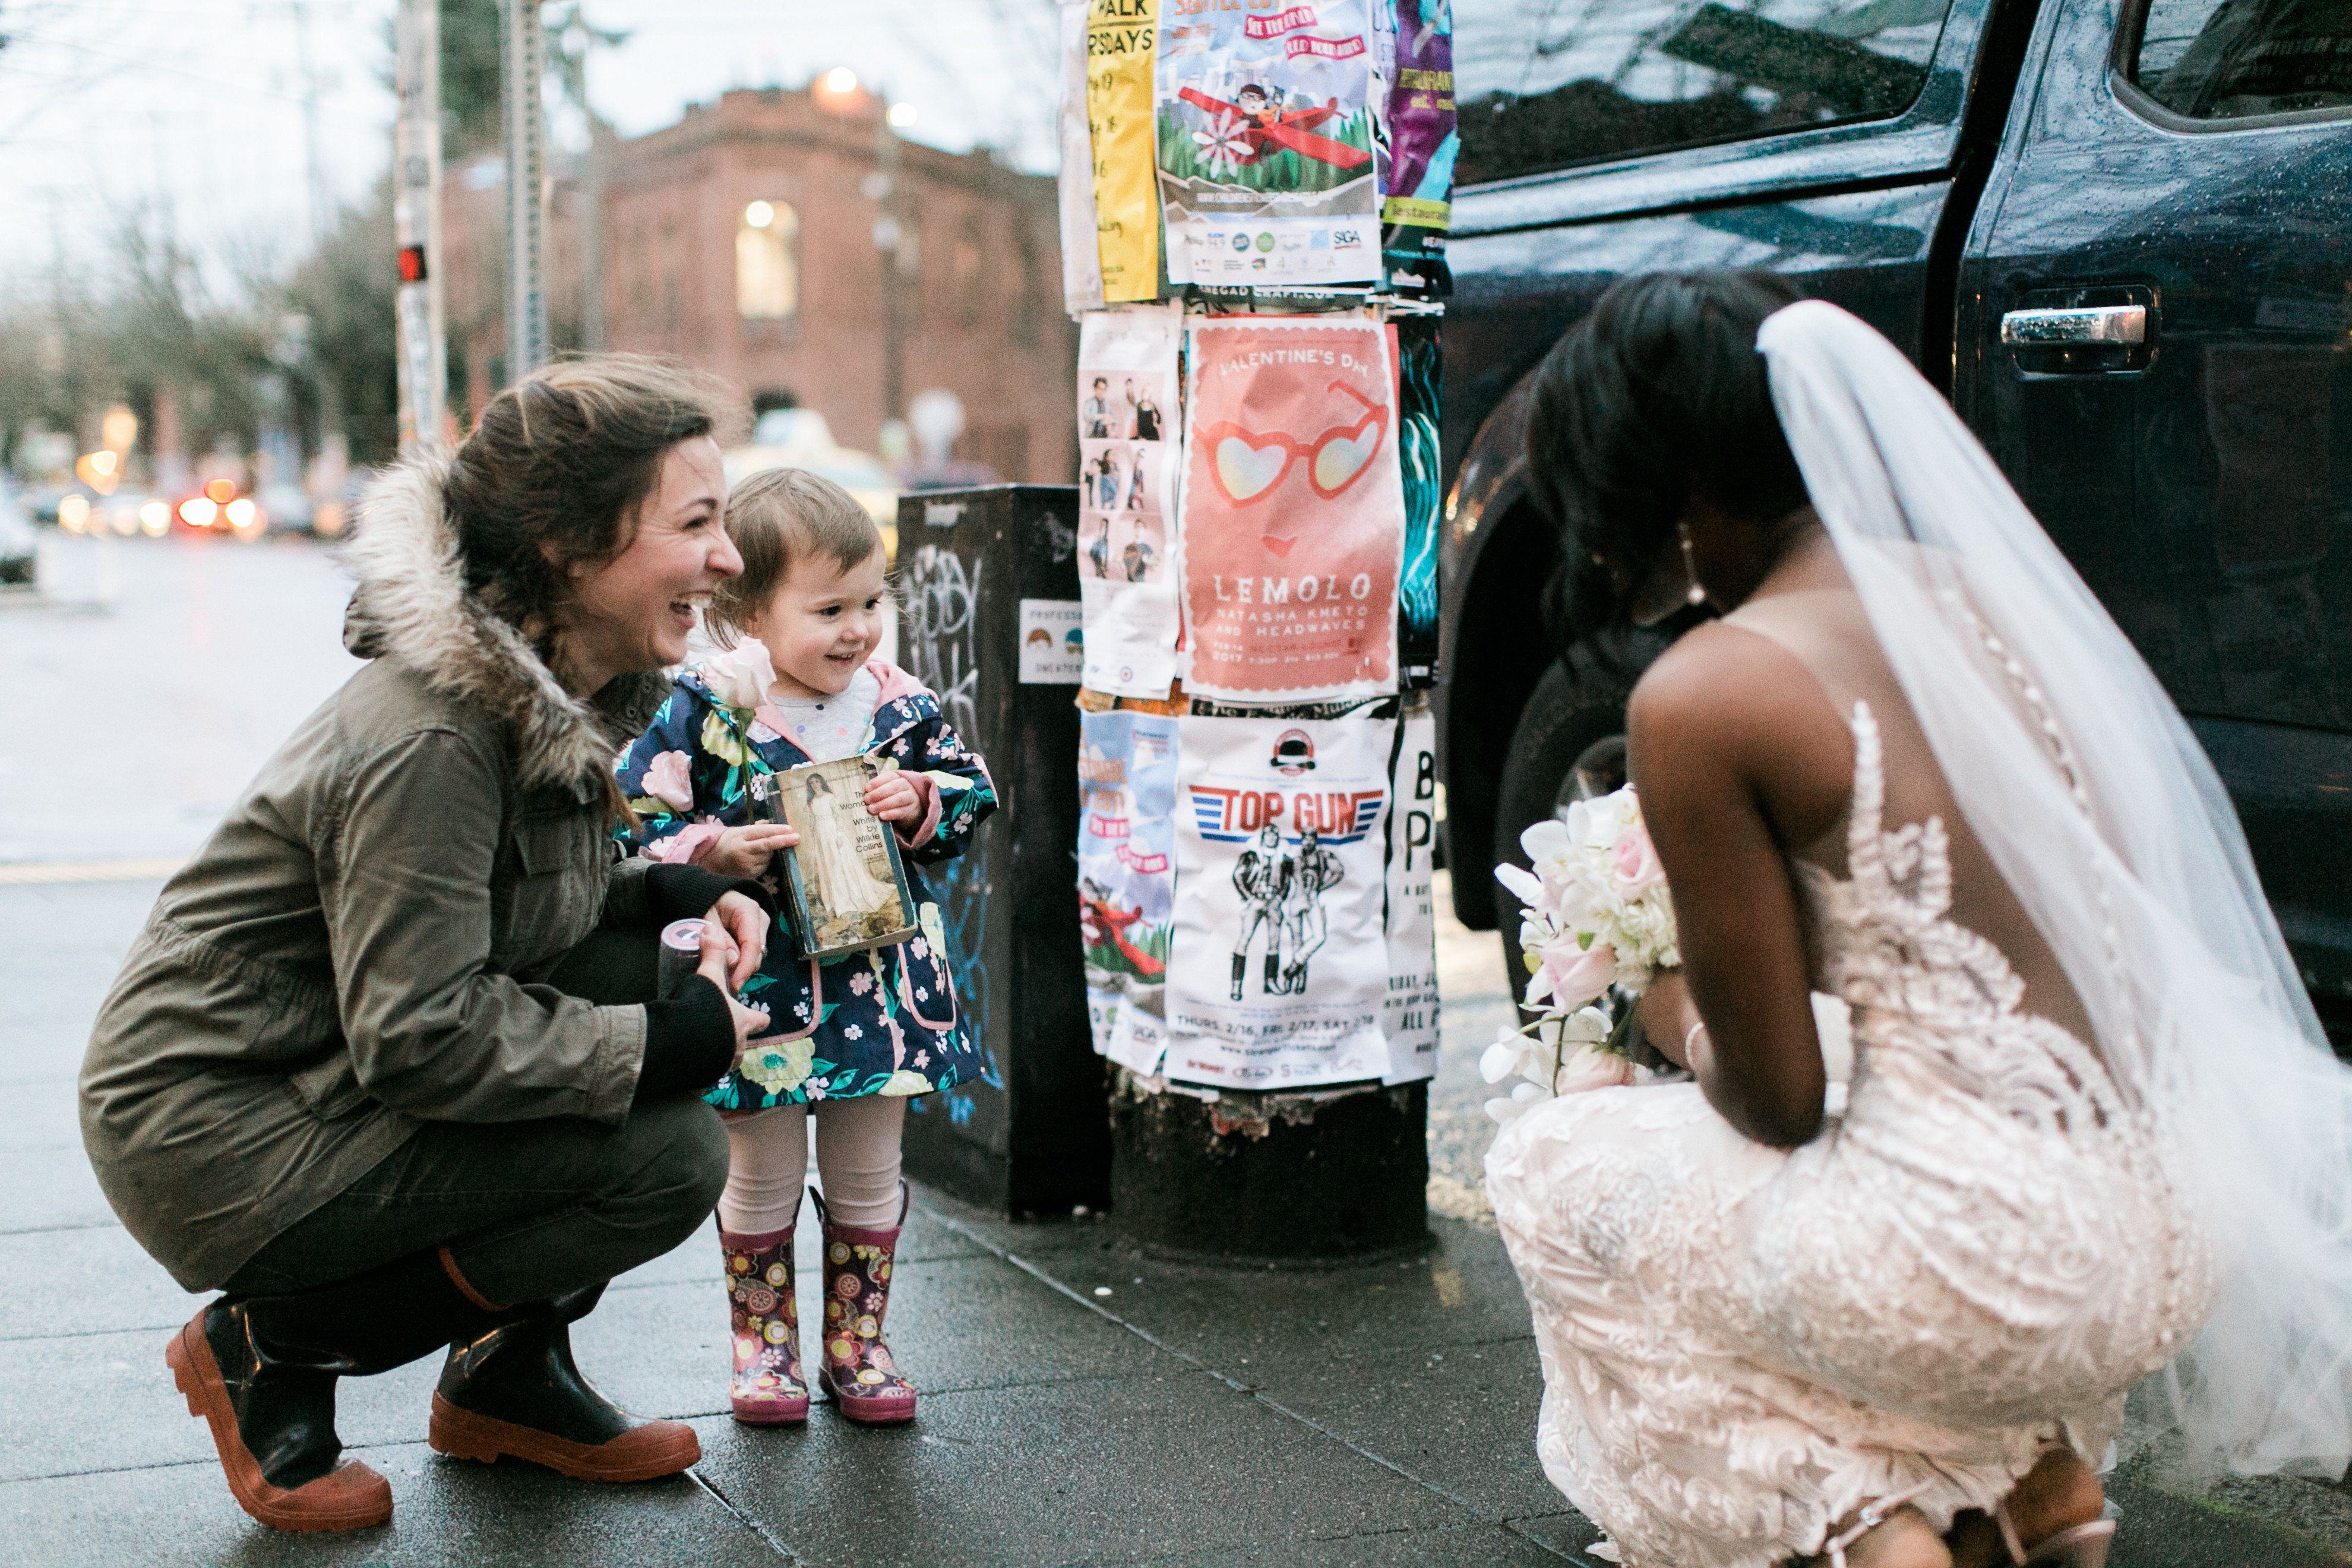 Little Girl Adorably Mistakes A Bride For A Princess From Her Favorite